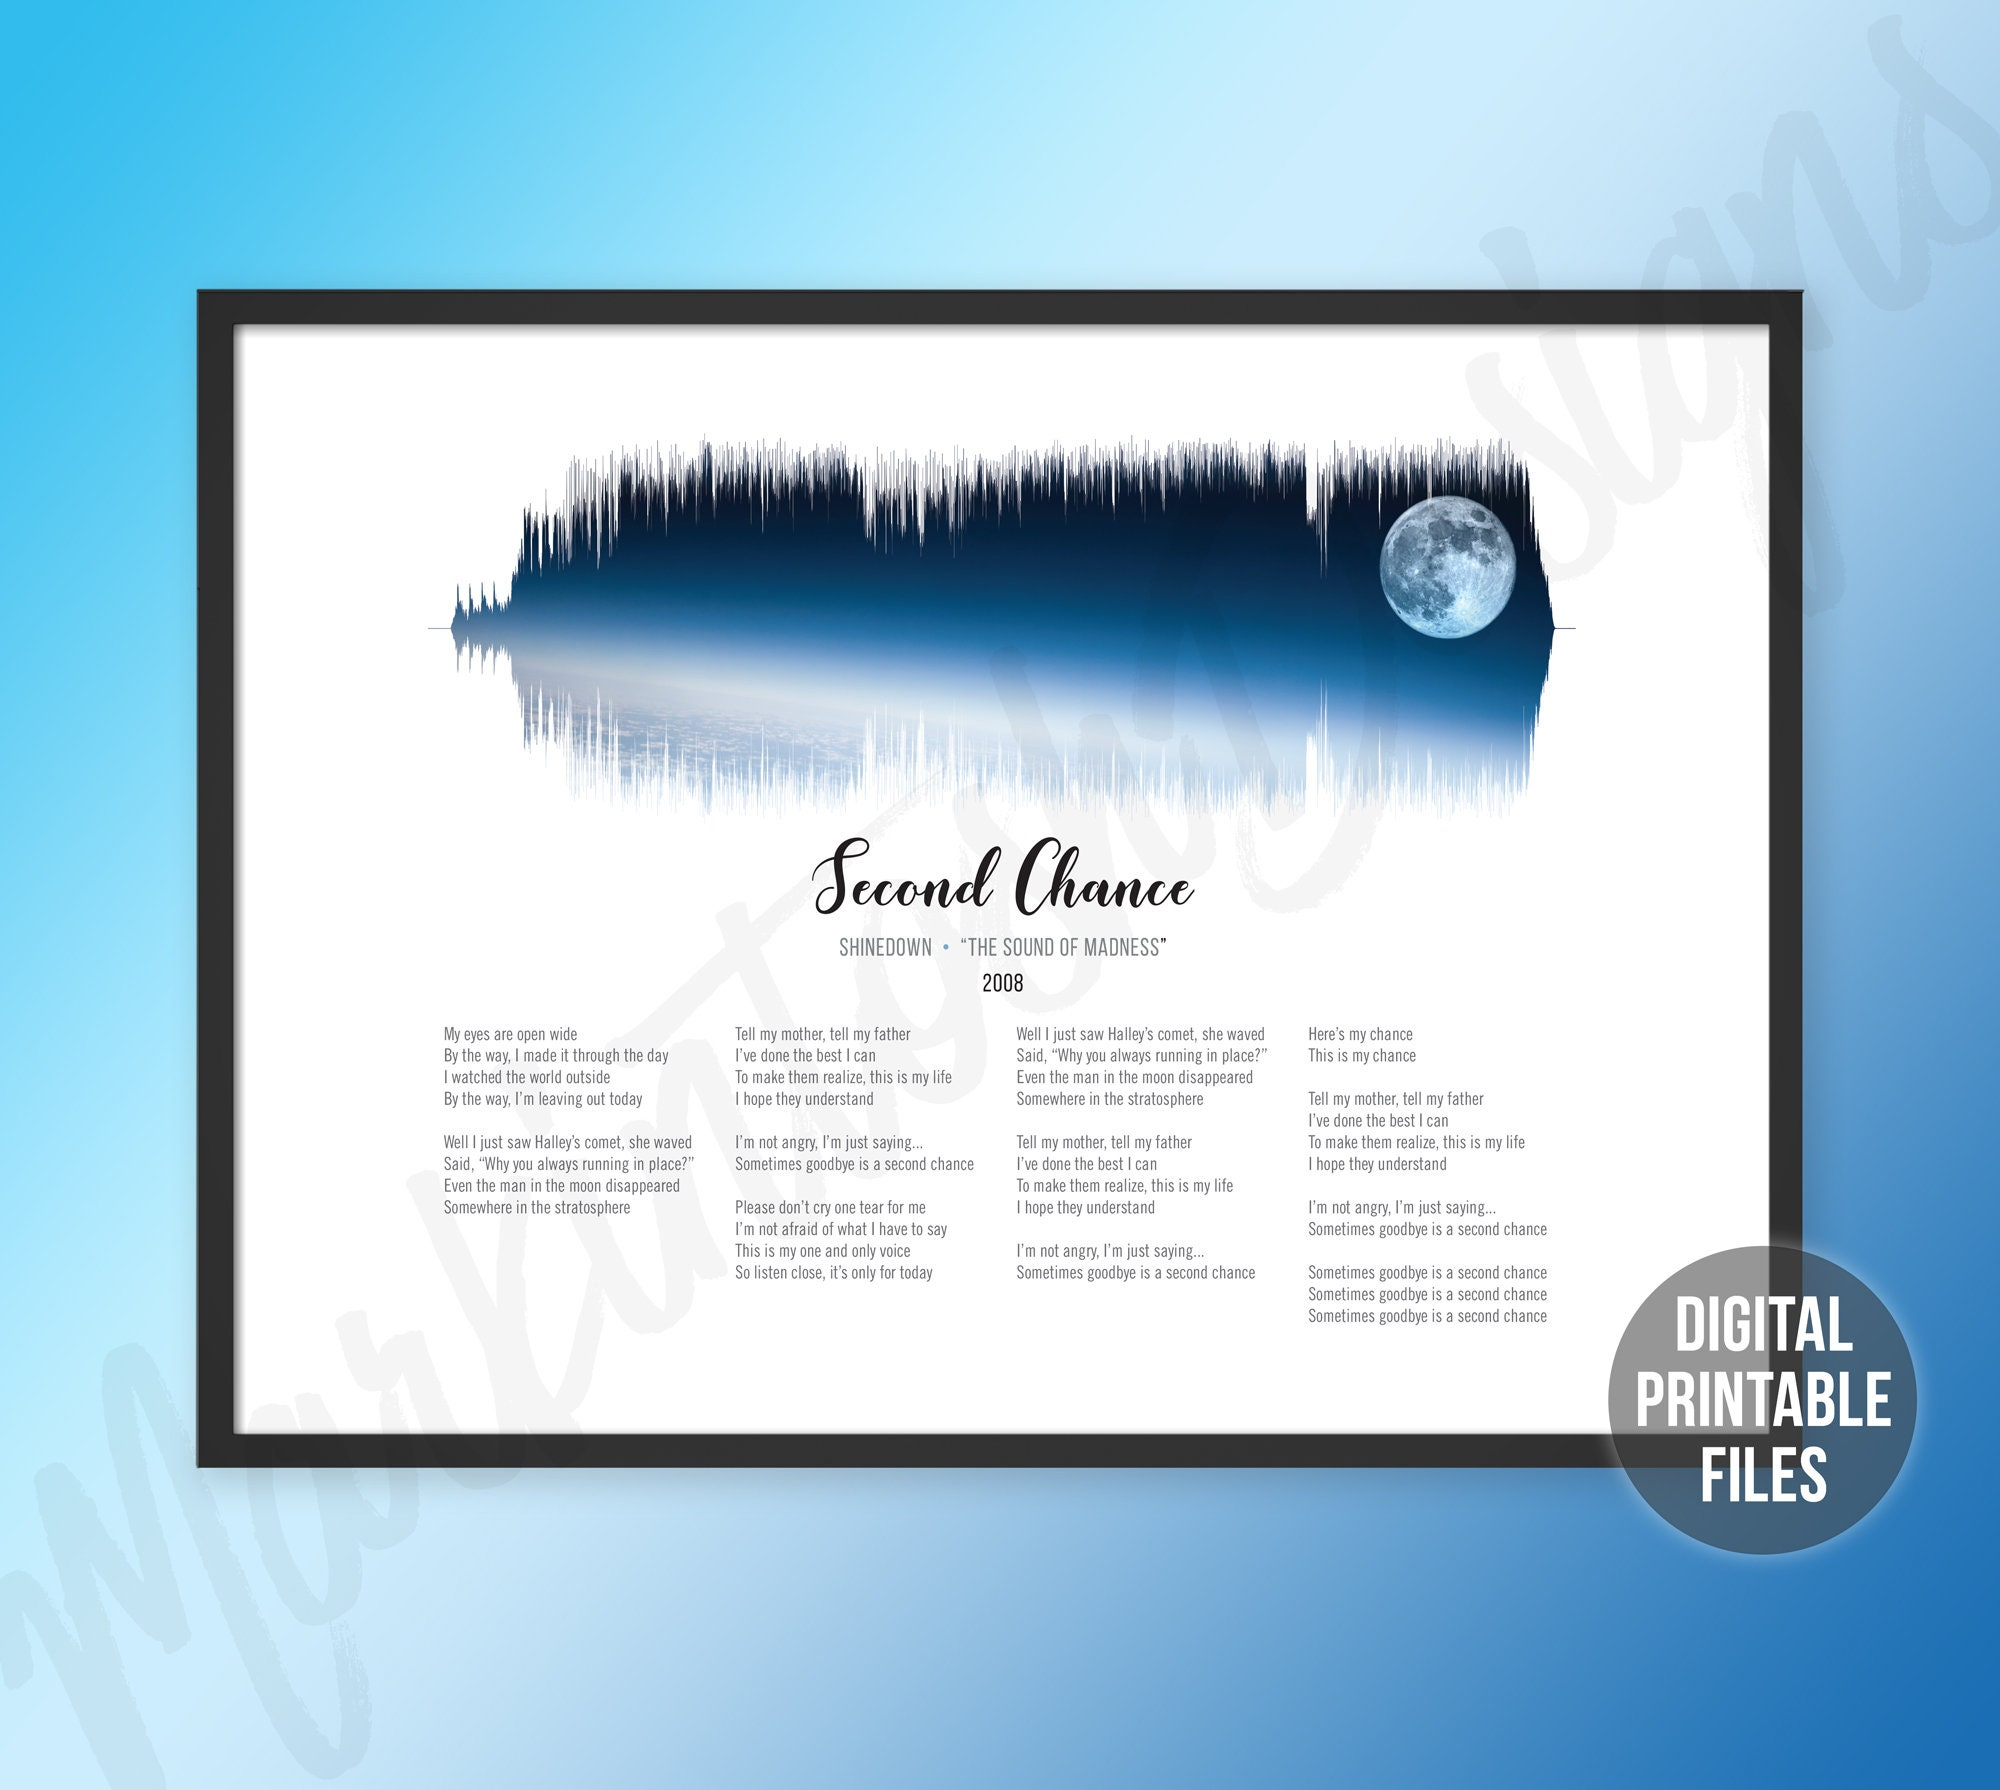 Second Chance, Sound Wave Lyrics art, Printable digital files, The, Sound  of Madness, Instant download, Customizable soundwave